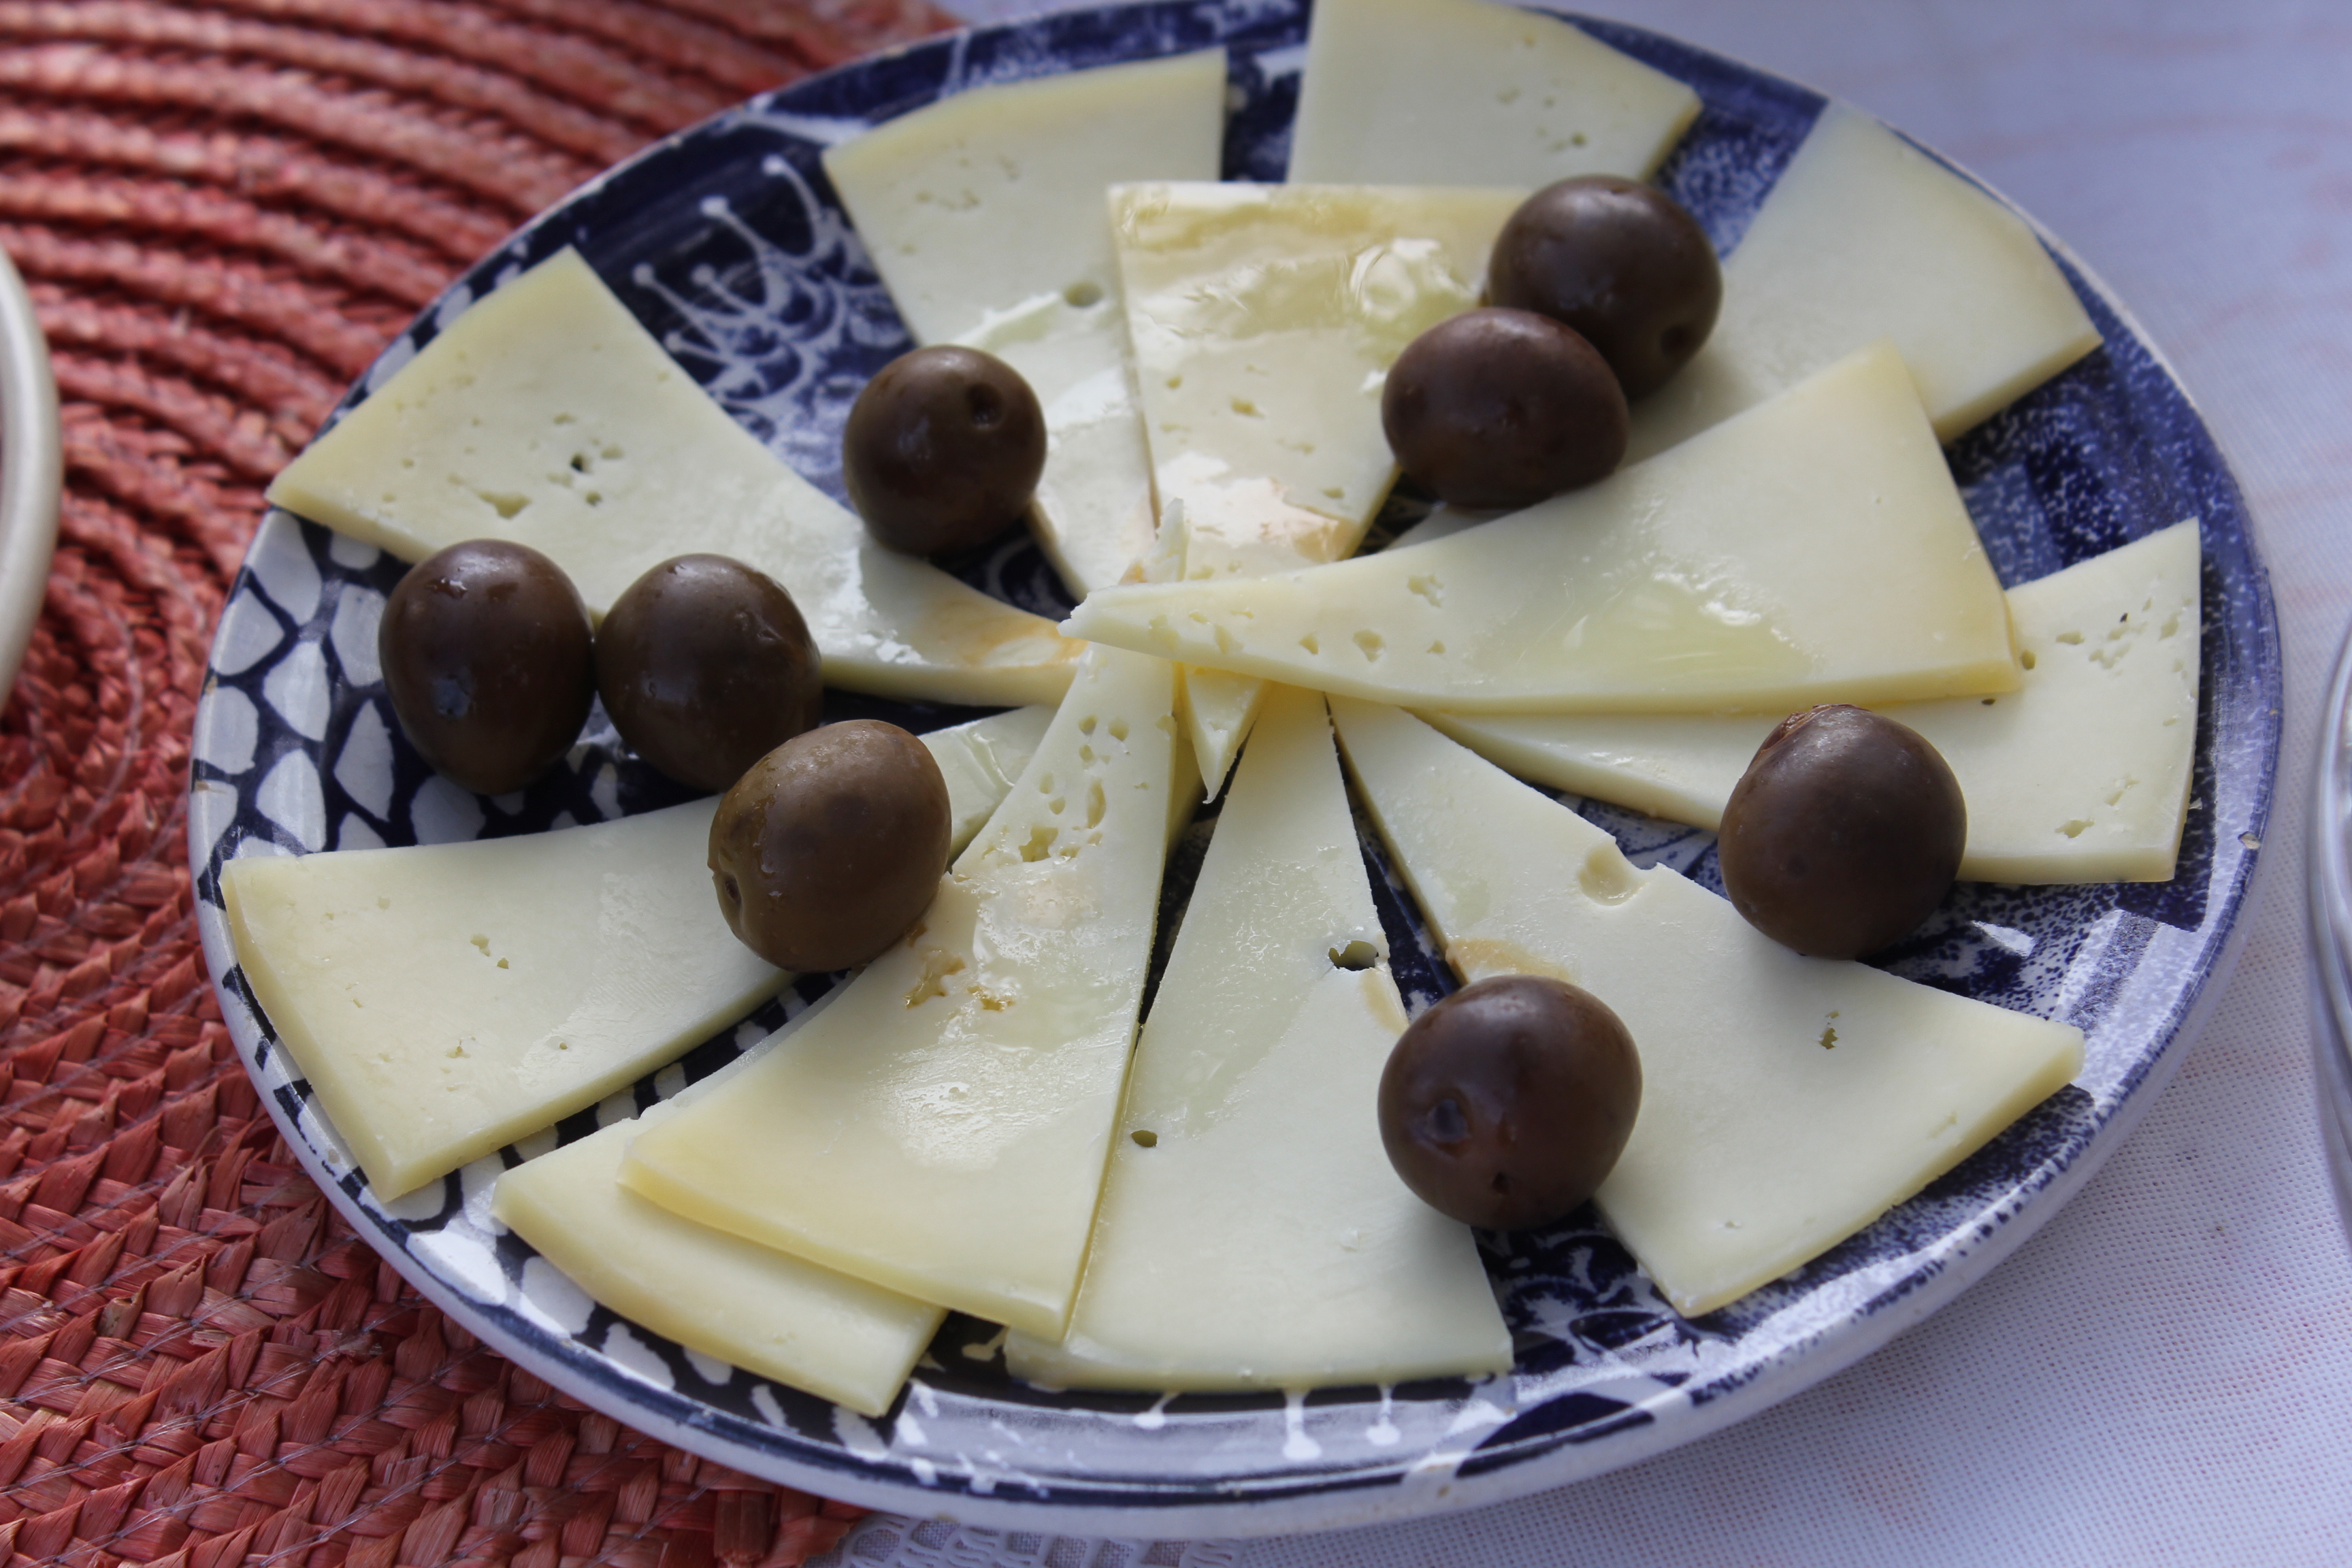 meals_sheeps cheese_olives.JPG